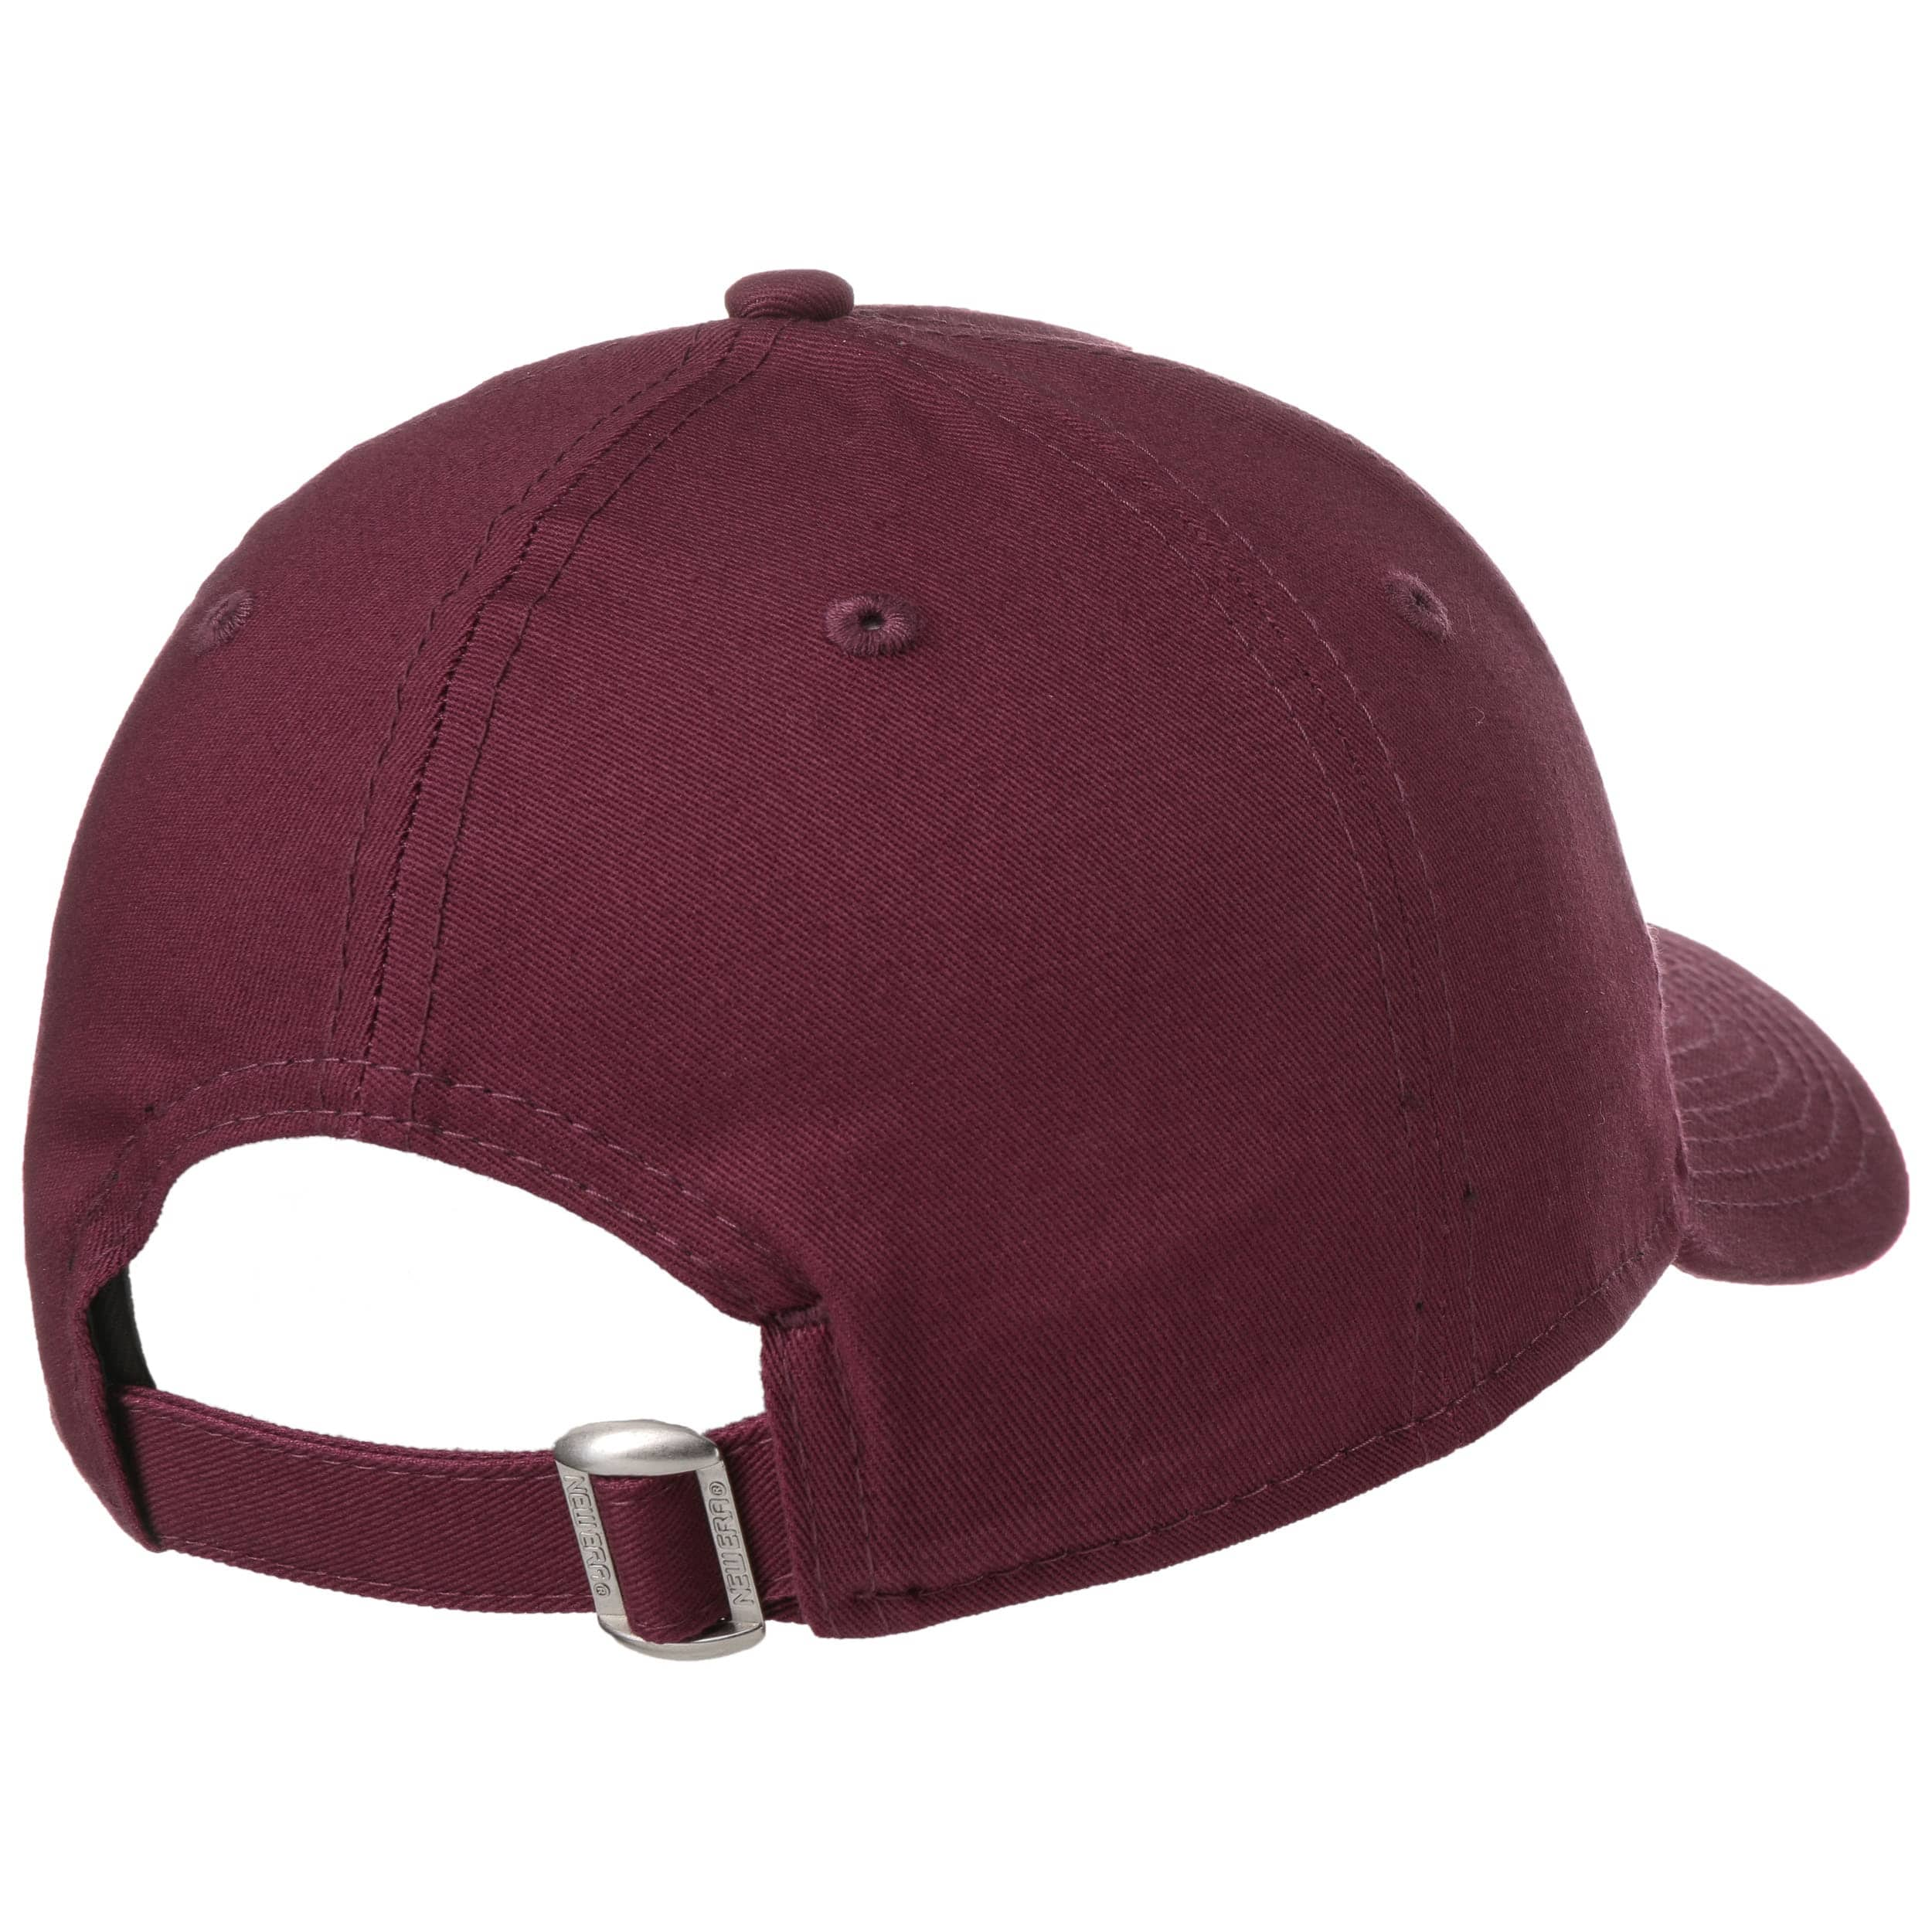 7d31d9da279b ... Casquette 9Forty NYC Ess by New Era - bordeaux 1 ...